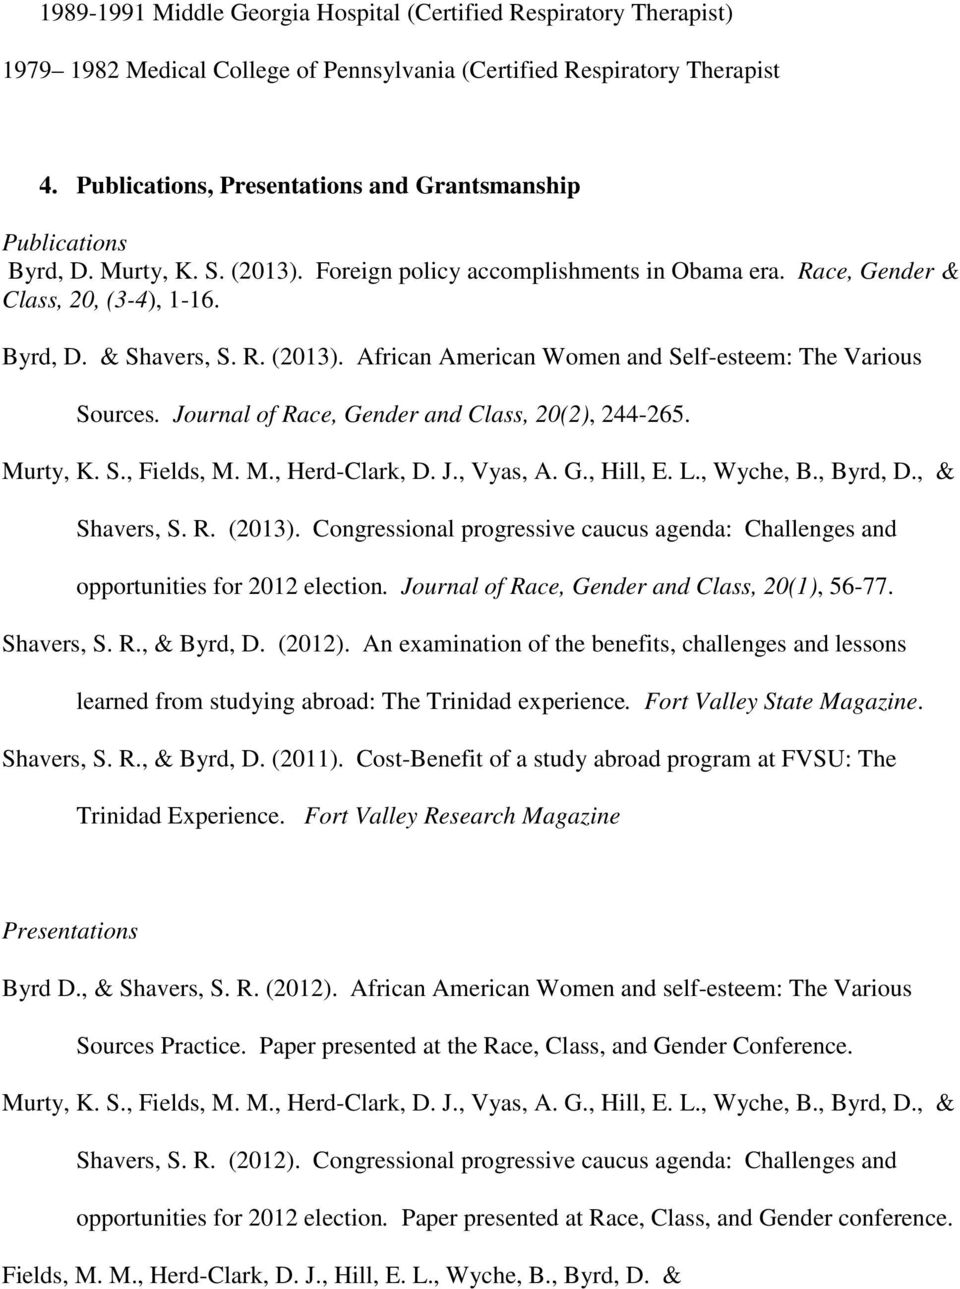 Journal of Race, Gender and Class, 20(2), 244-265. Murty, K. S., Fields, M. M., Herd-Clark, D. J., Vyas, A. G., Hill, E. L., Wyche, B., Byrd, D., & Shavers, S. R. (2013).